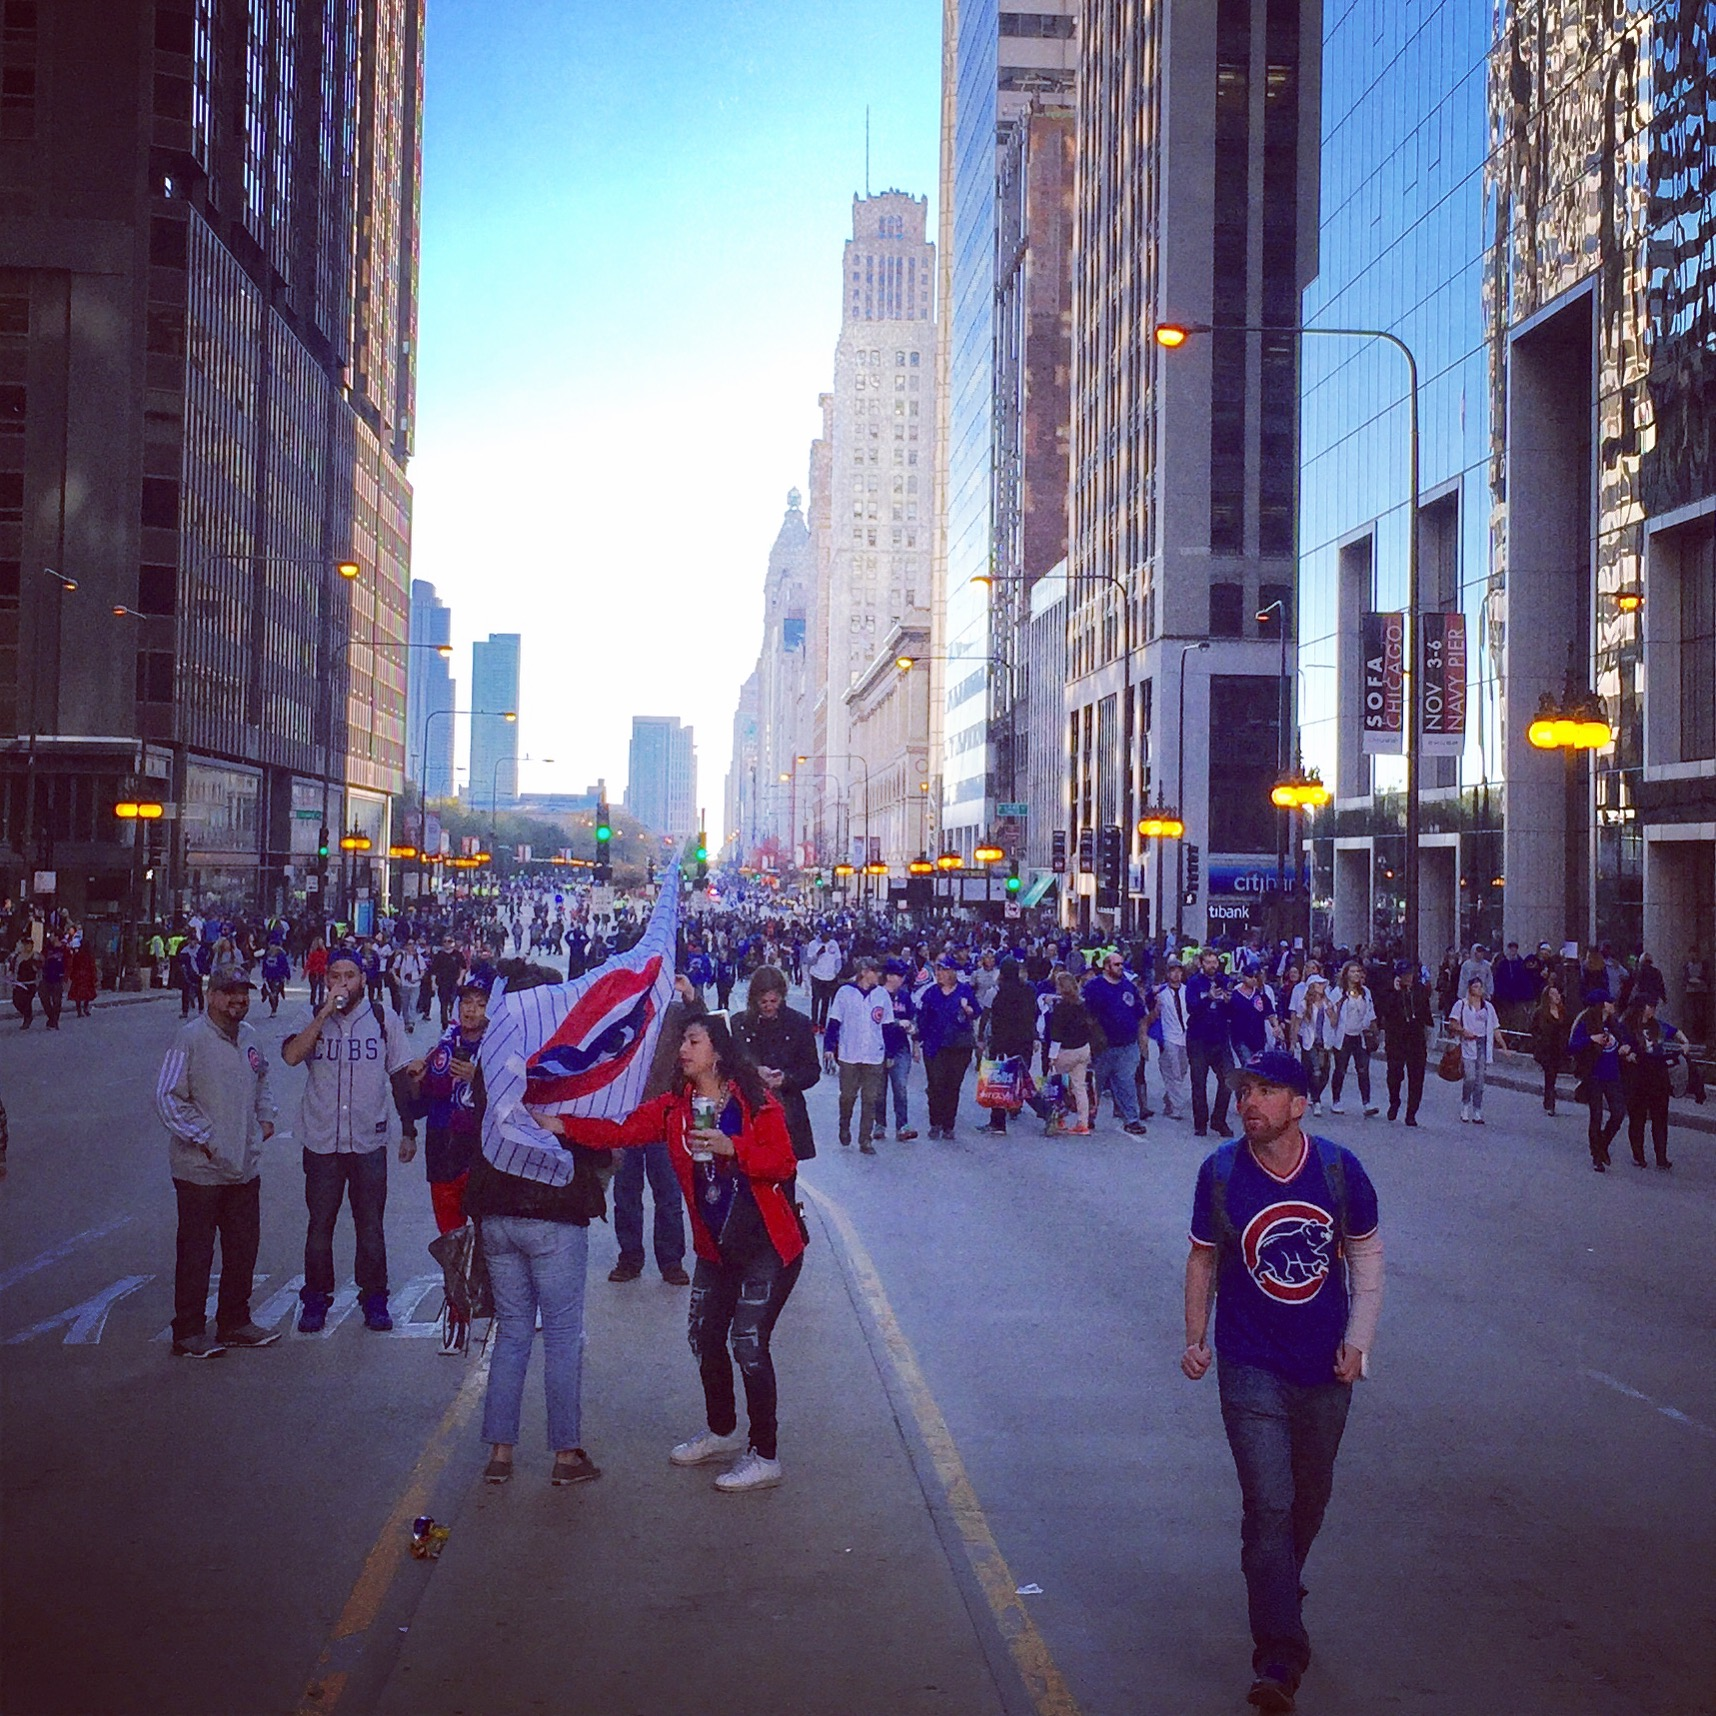 Cubs Victory Parade, Chicago, IL, Nov. 2016